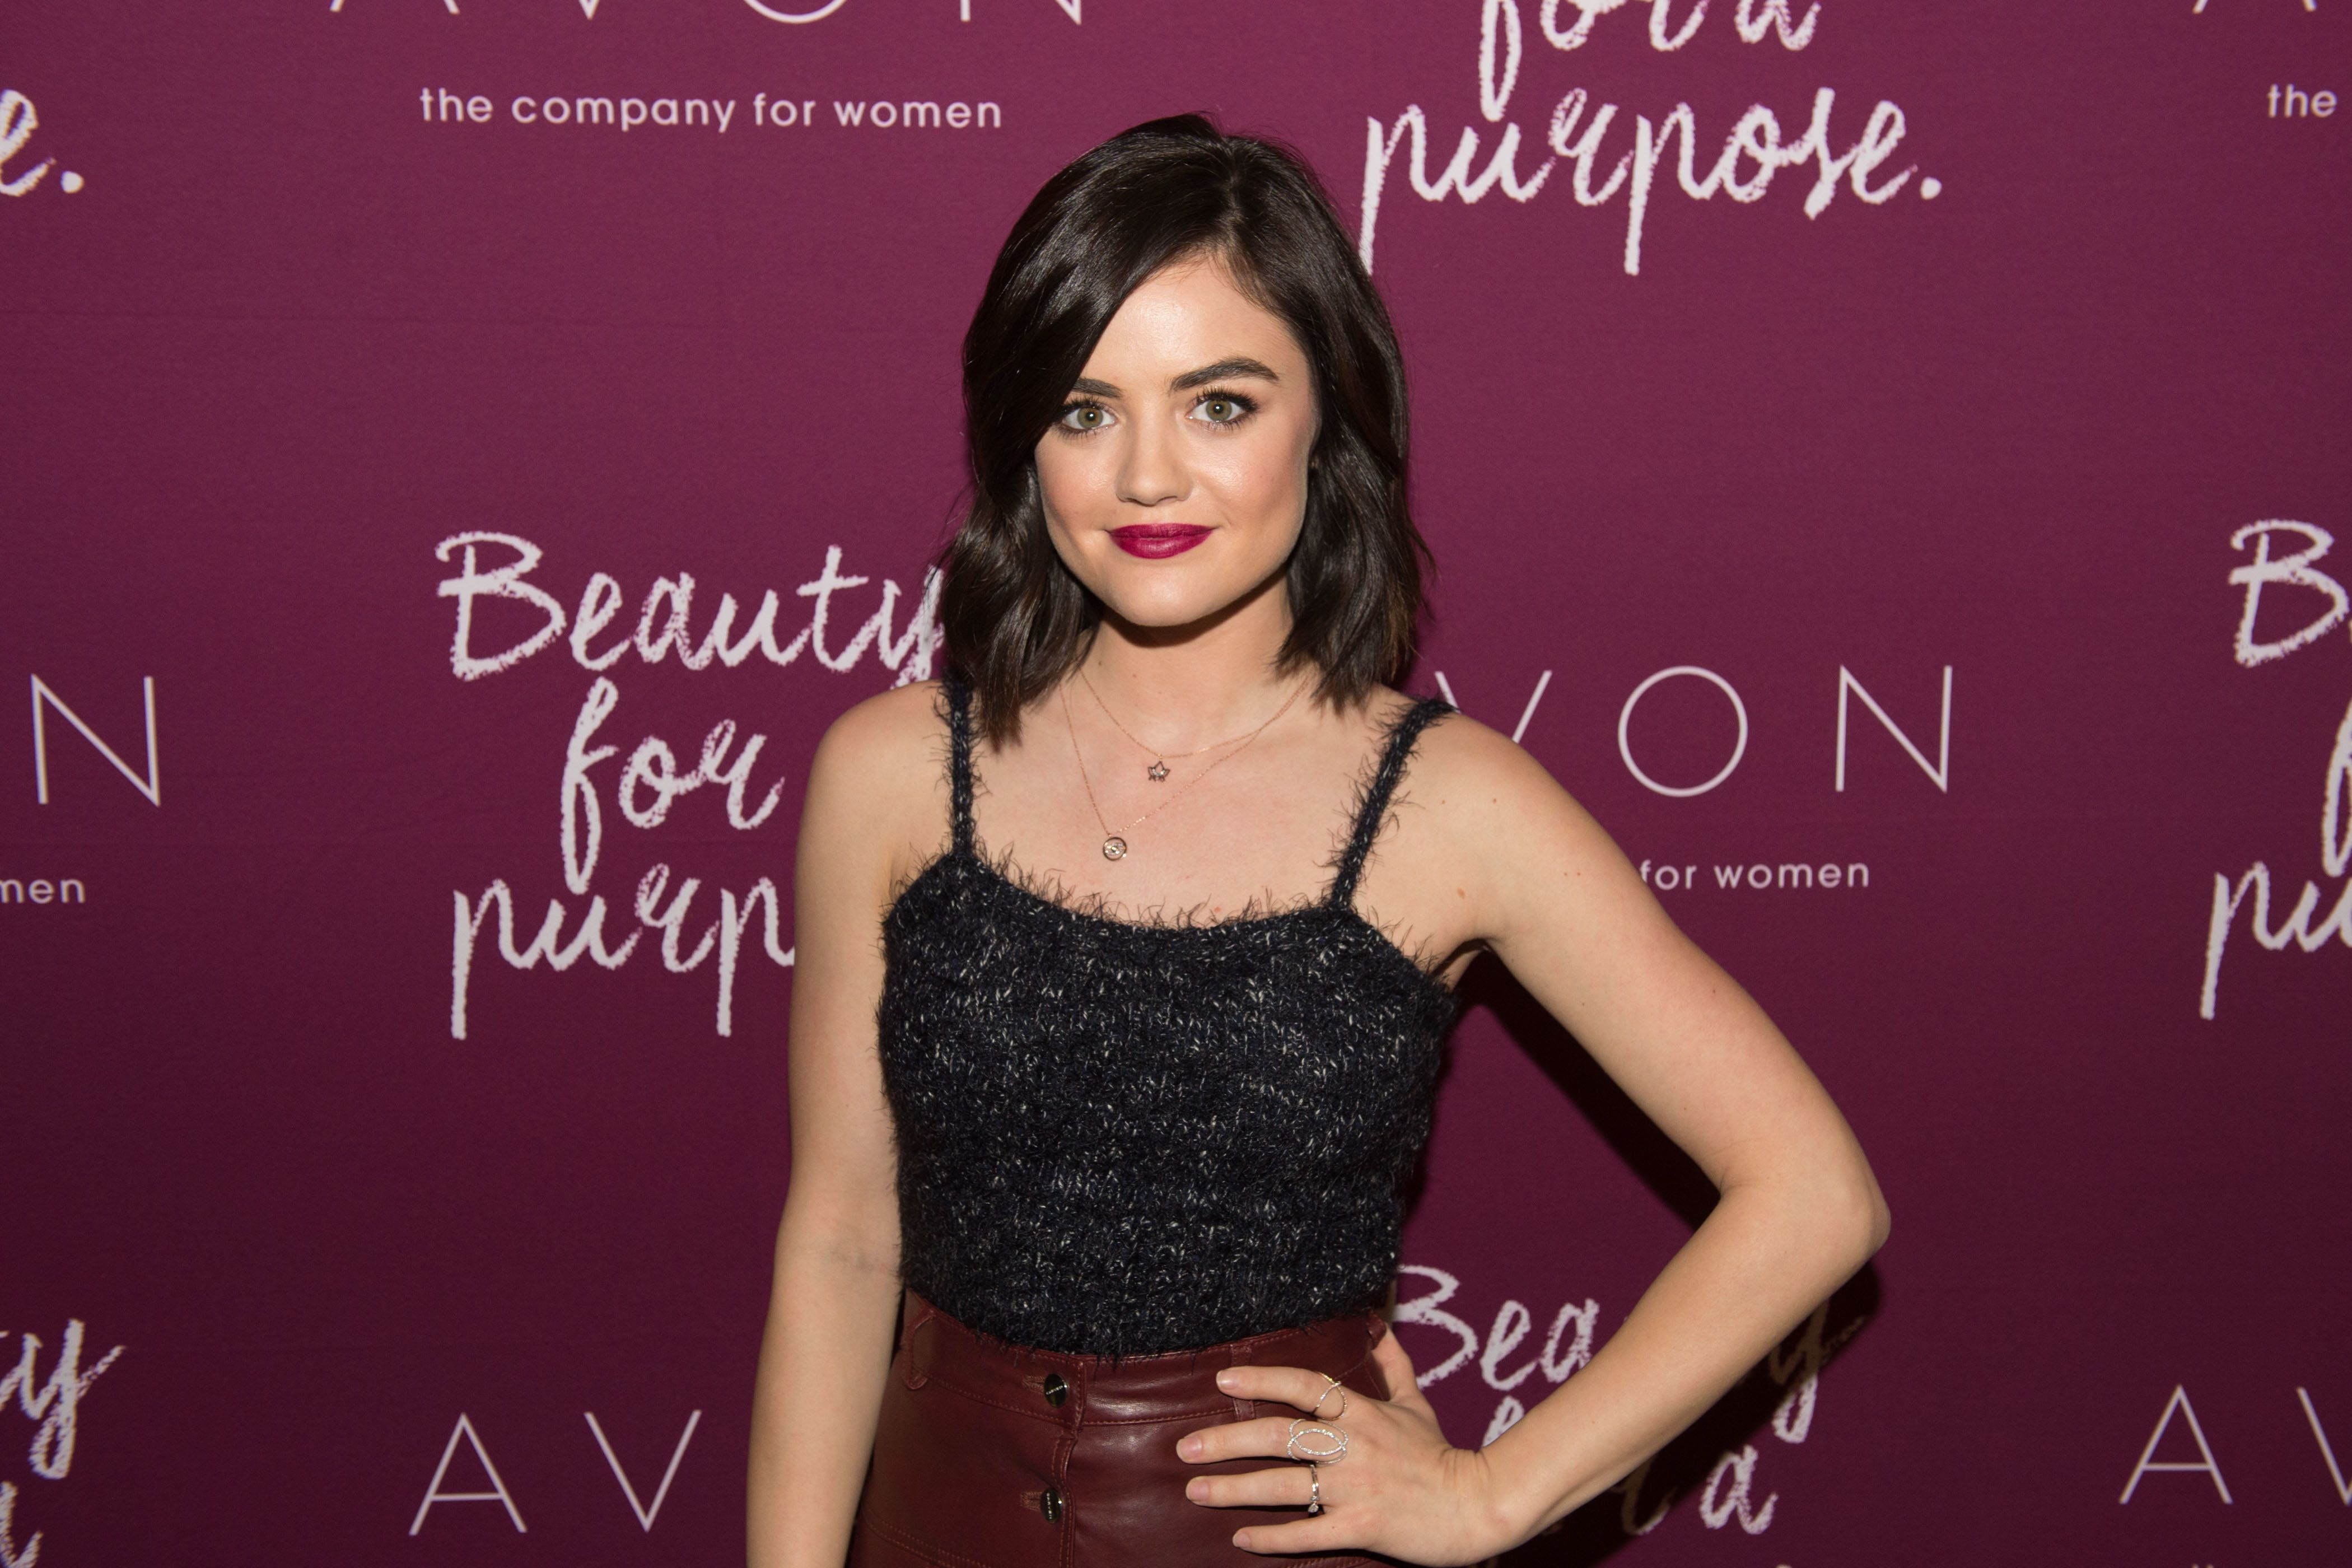 NEW YORK, NY - OCTOBER 28:  Lucy Hale, mark. Brand Ambassador, attends the mark. Holiday Collection event at Avon Products, Inc. New York on October 28, 2015 in New York City.  (Photo by Rob Loud/Getty Images for Avon)